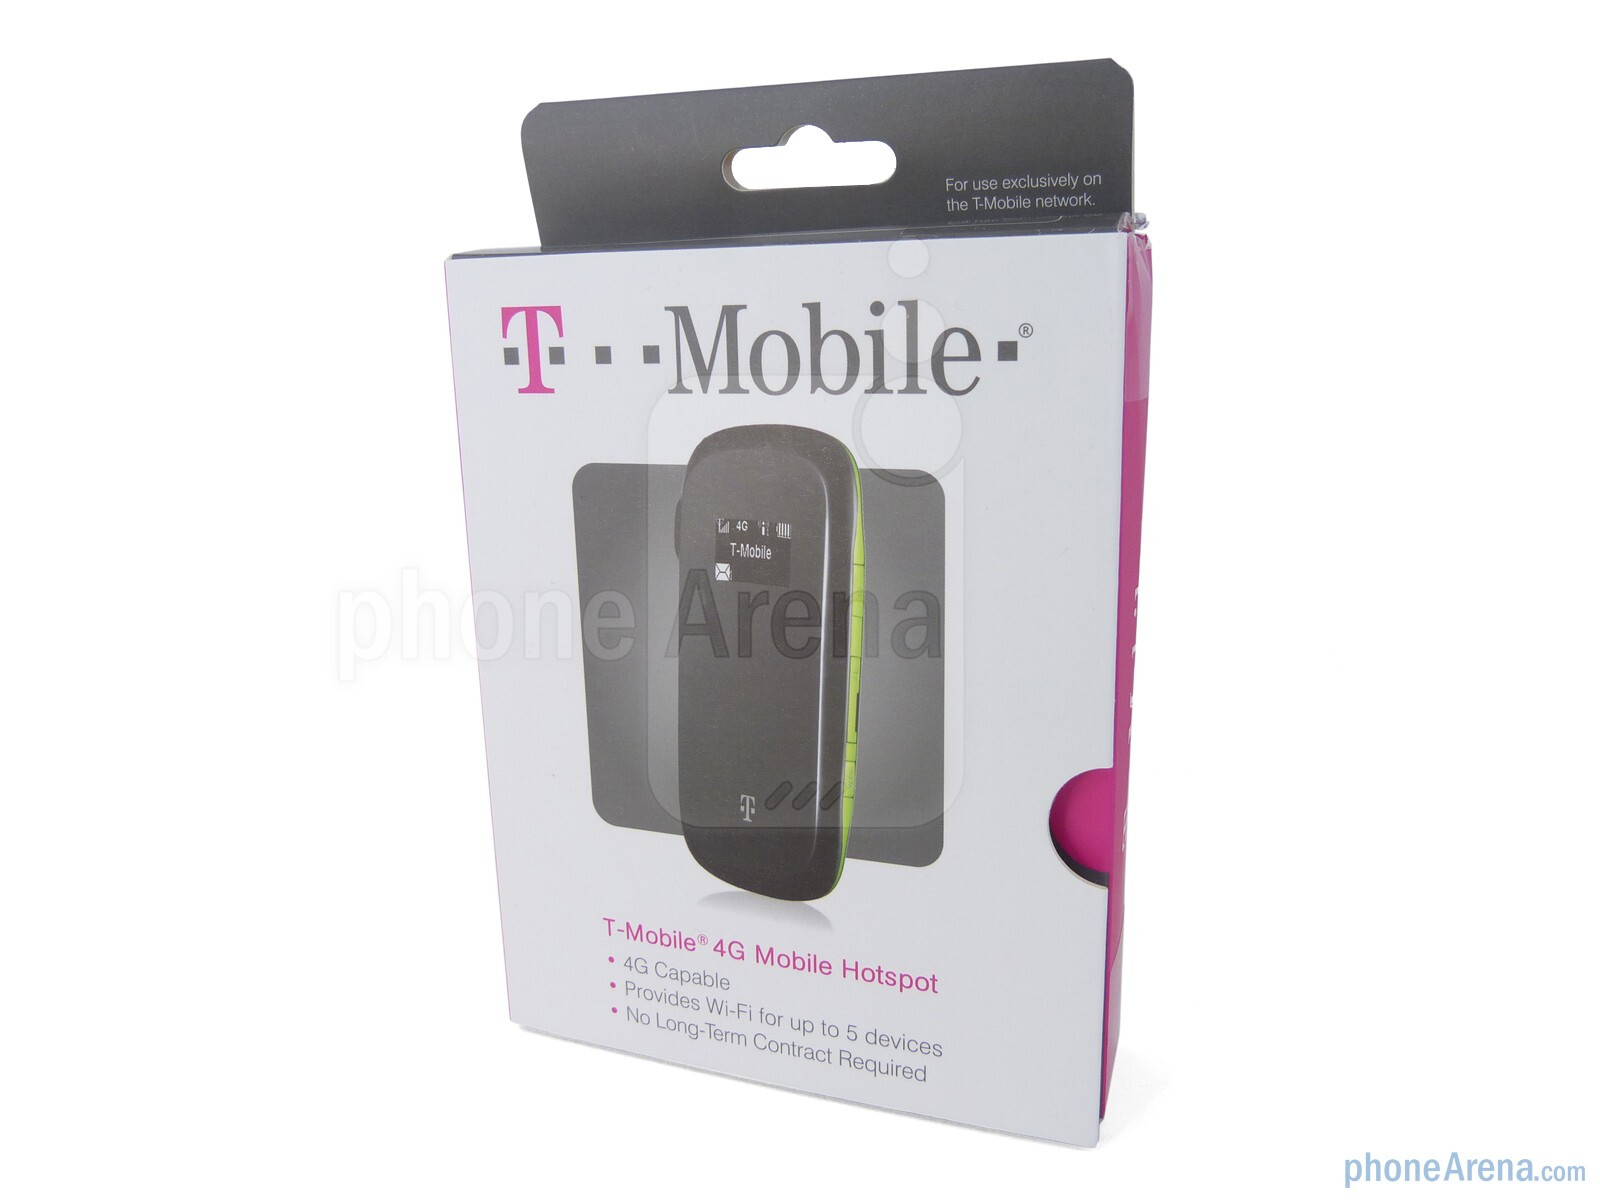 t mobile 4g mobile hotspot review. Black Bedroom Furniture Sets. Home Design Ideas